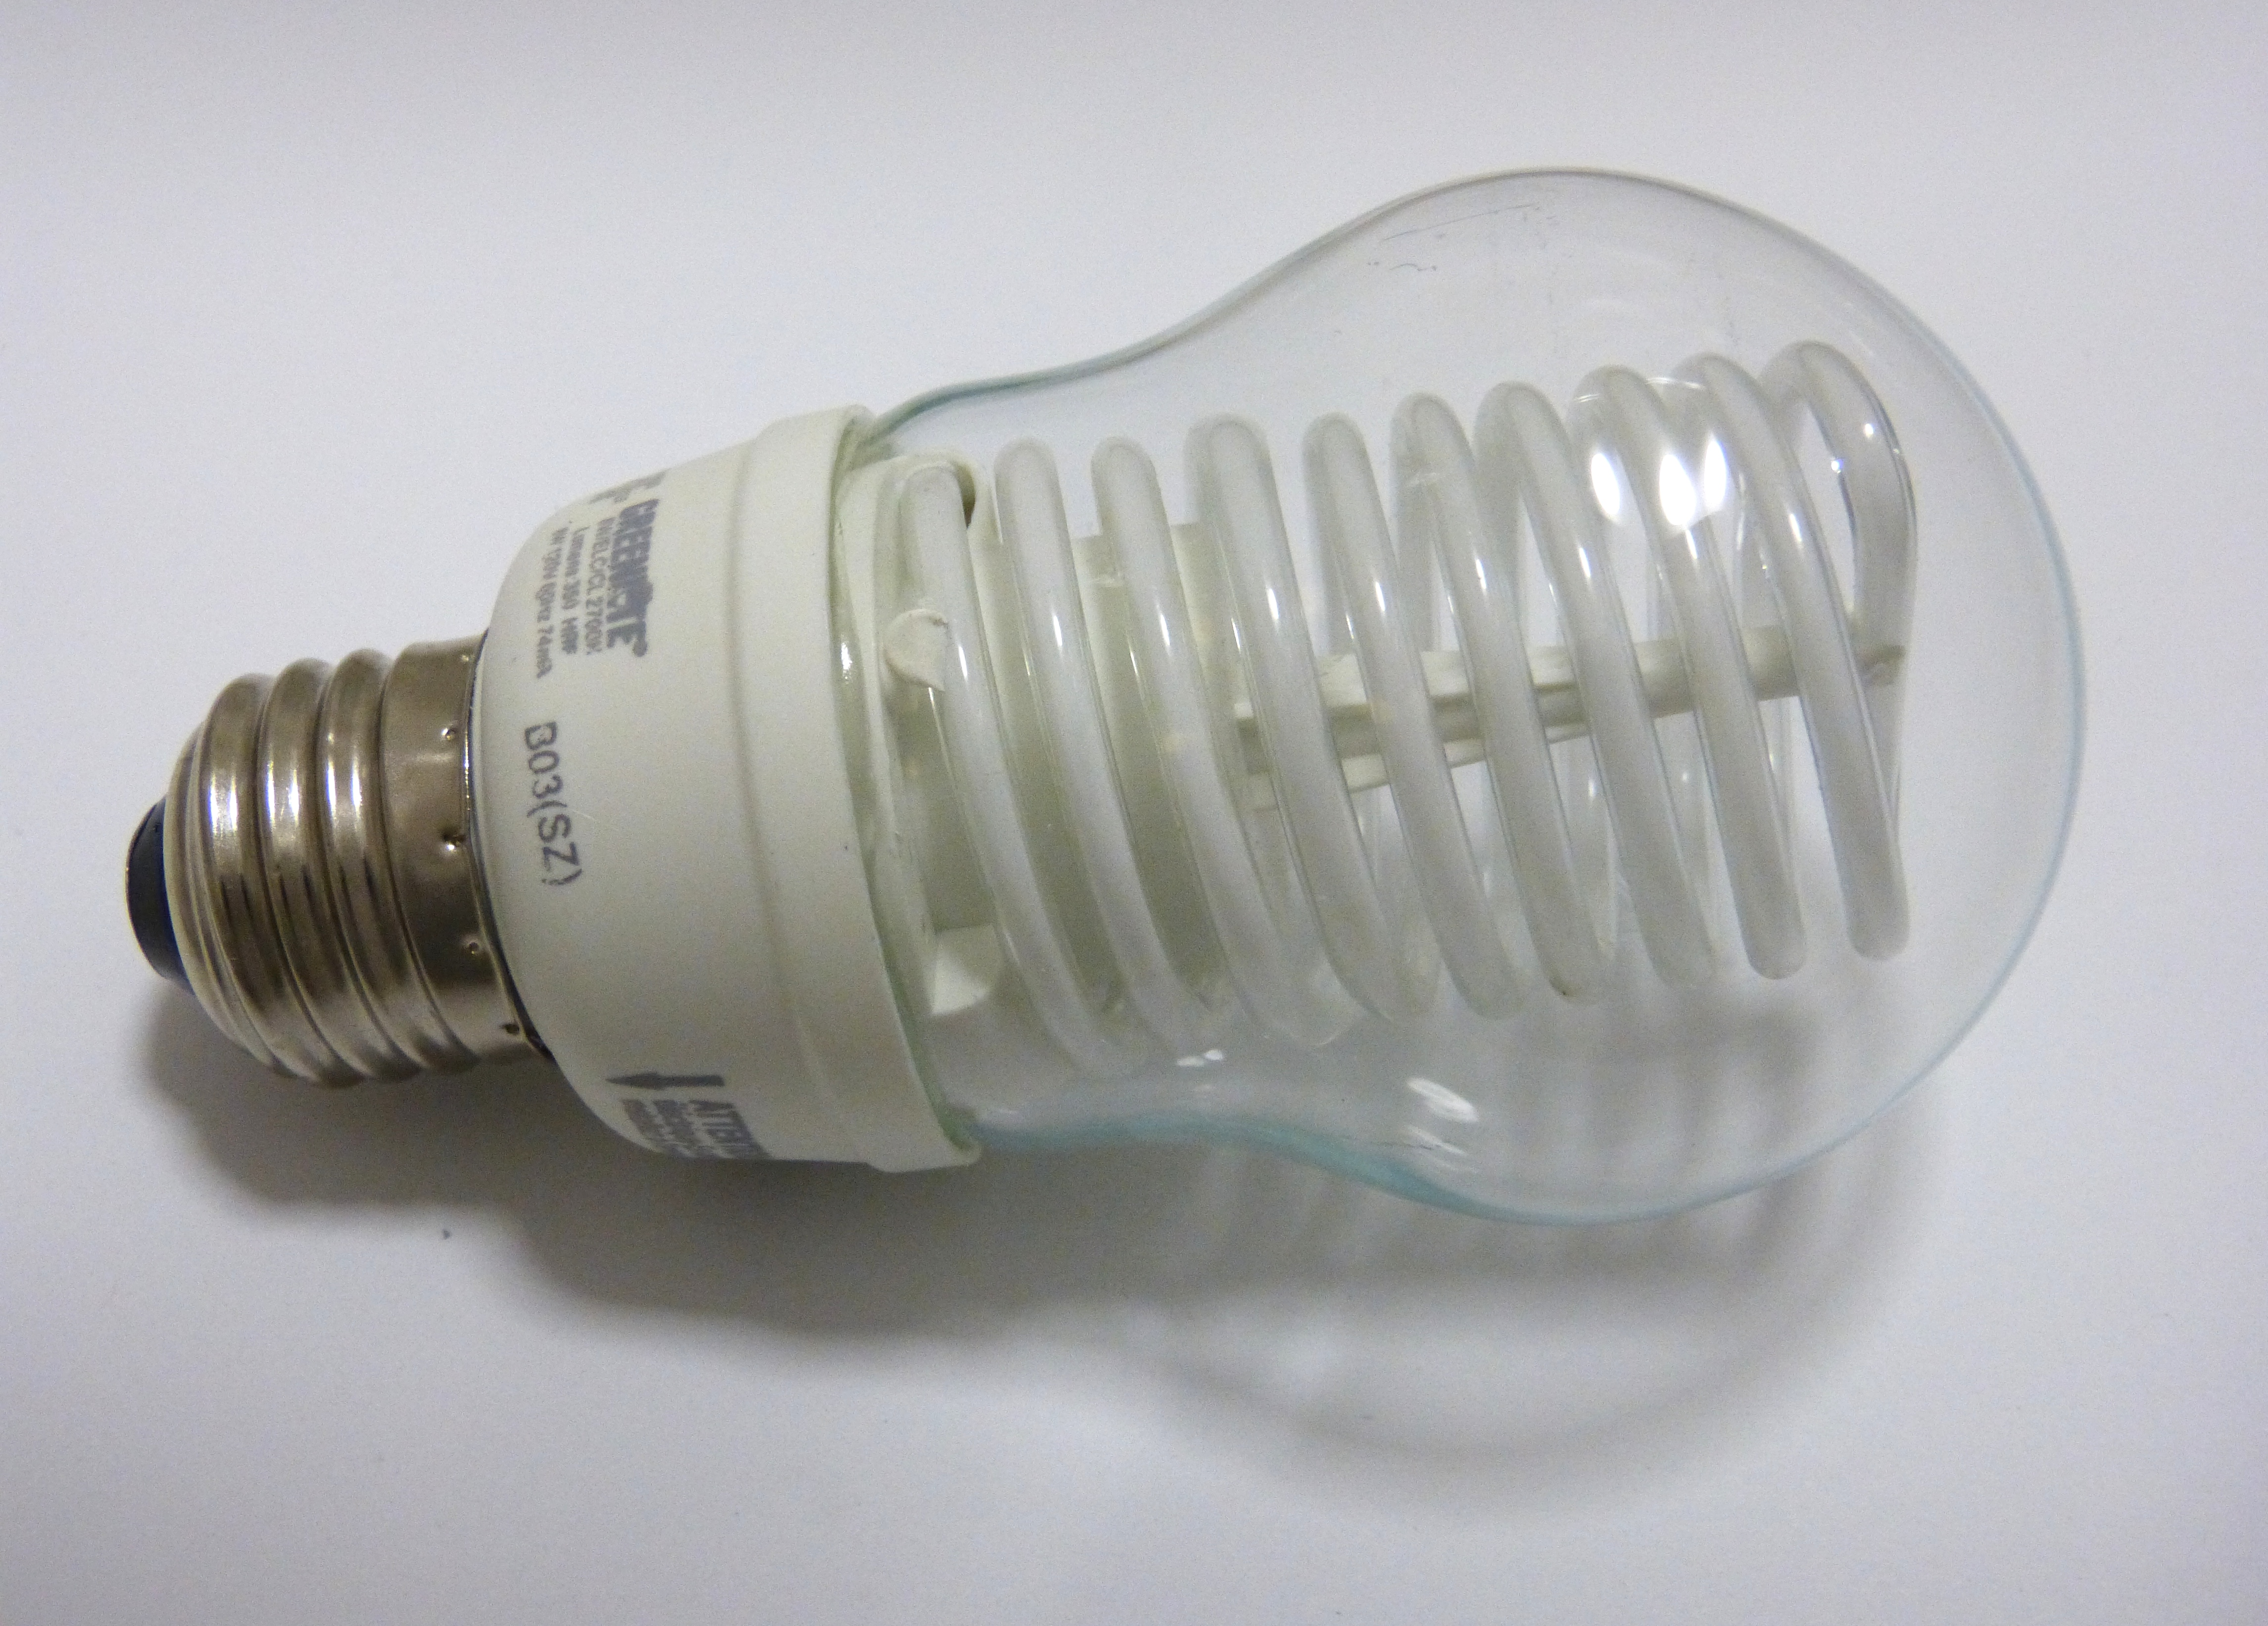 Ge To Stop Producing Cfls In Favor Of Leds